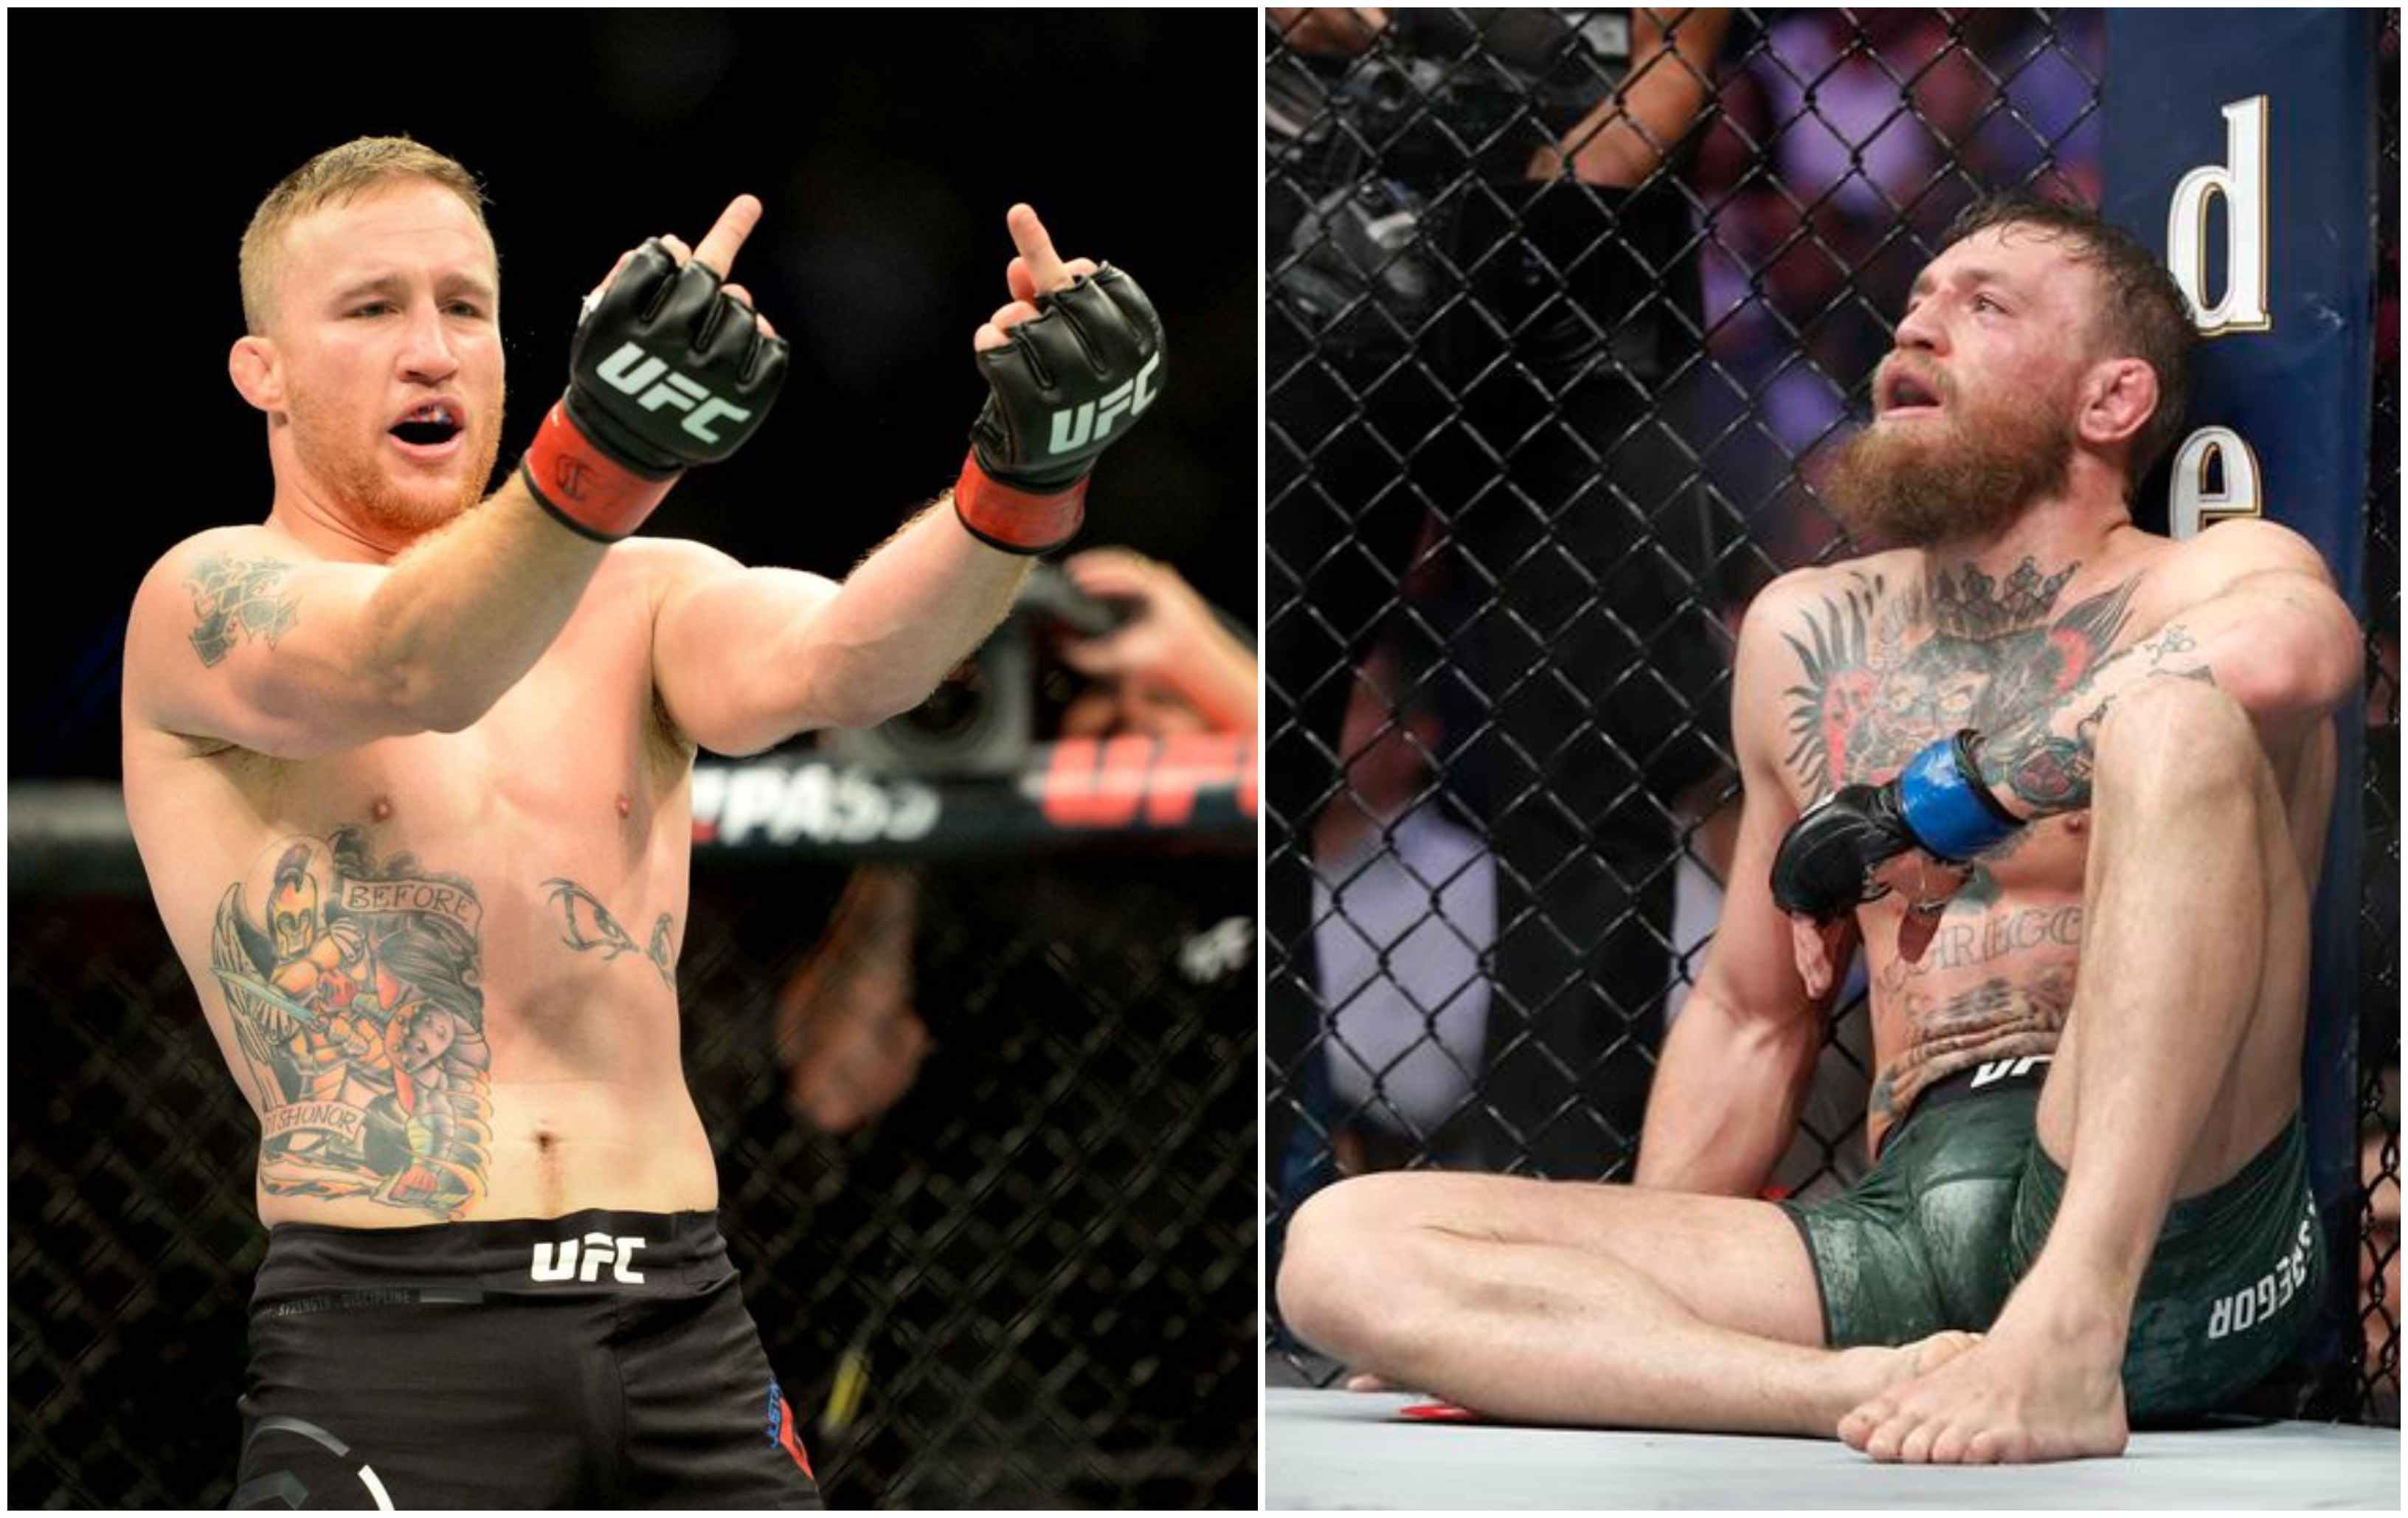 Justice served: Justin Gaethje moves above Conor McGregor in latest UFC LW rankings - McGregor